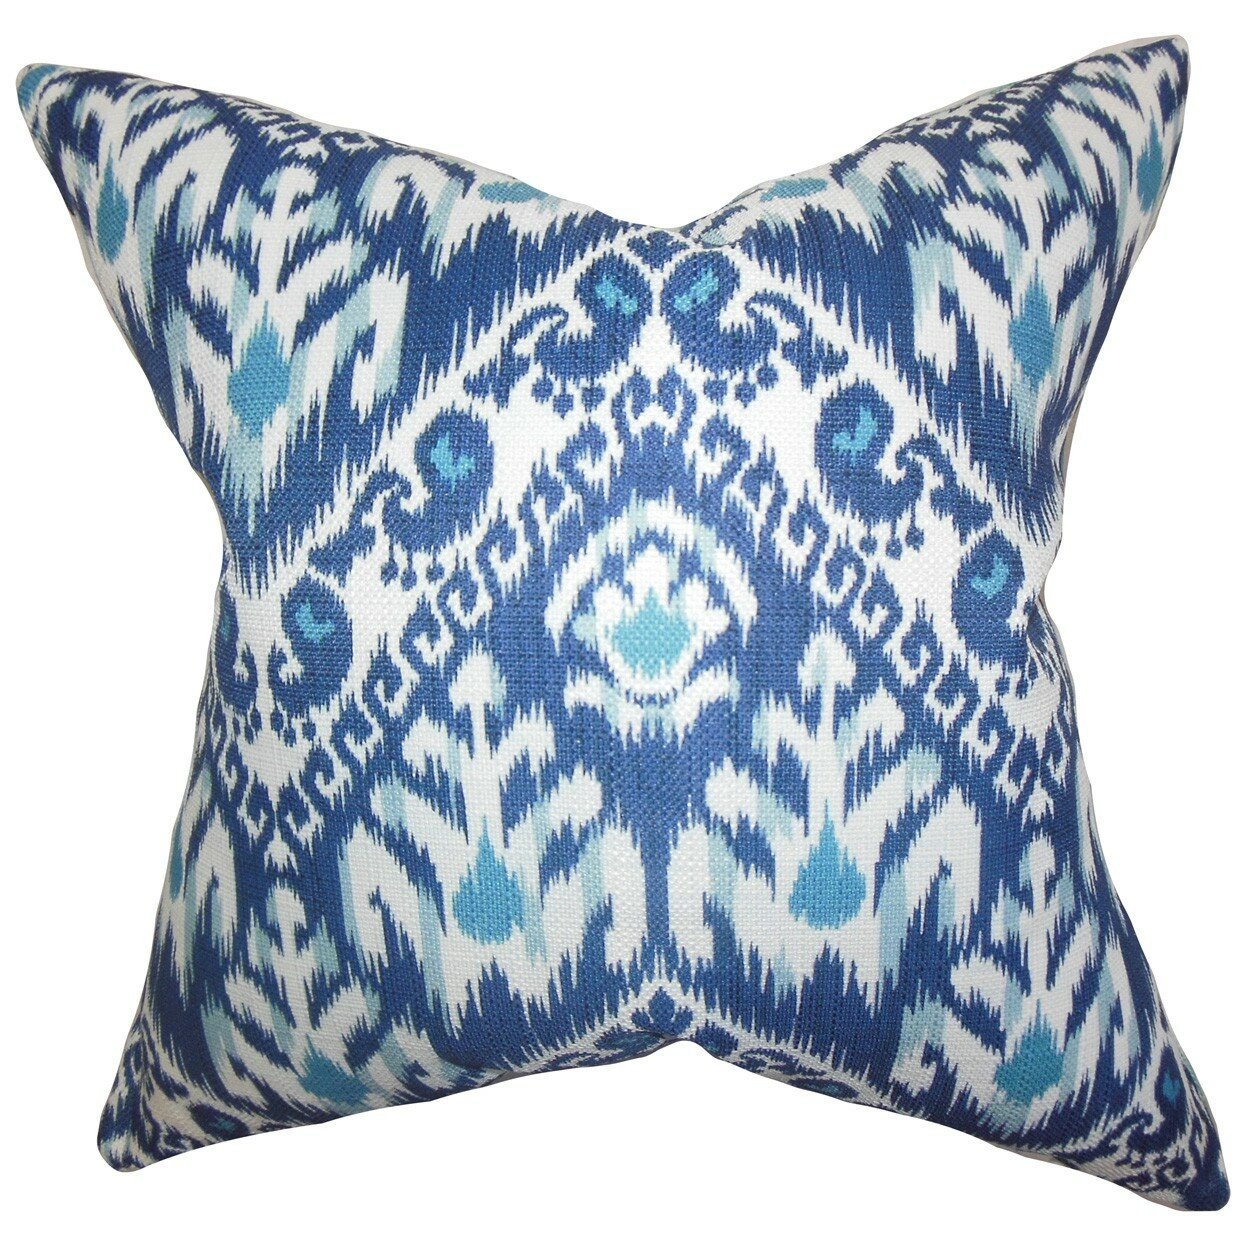 Wayfair Blue Decorative Pillows : The Pillow Collection Rafiq Ikat Throw Pillow & Reviews Wayfair